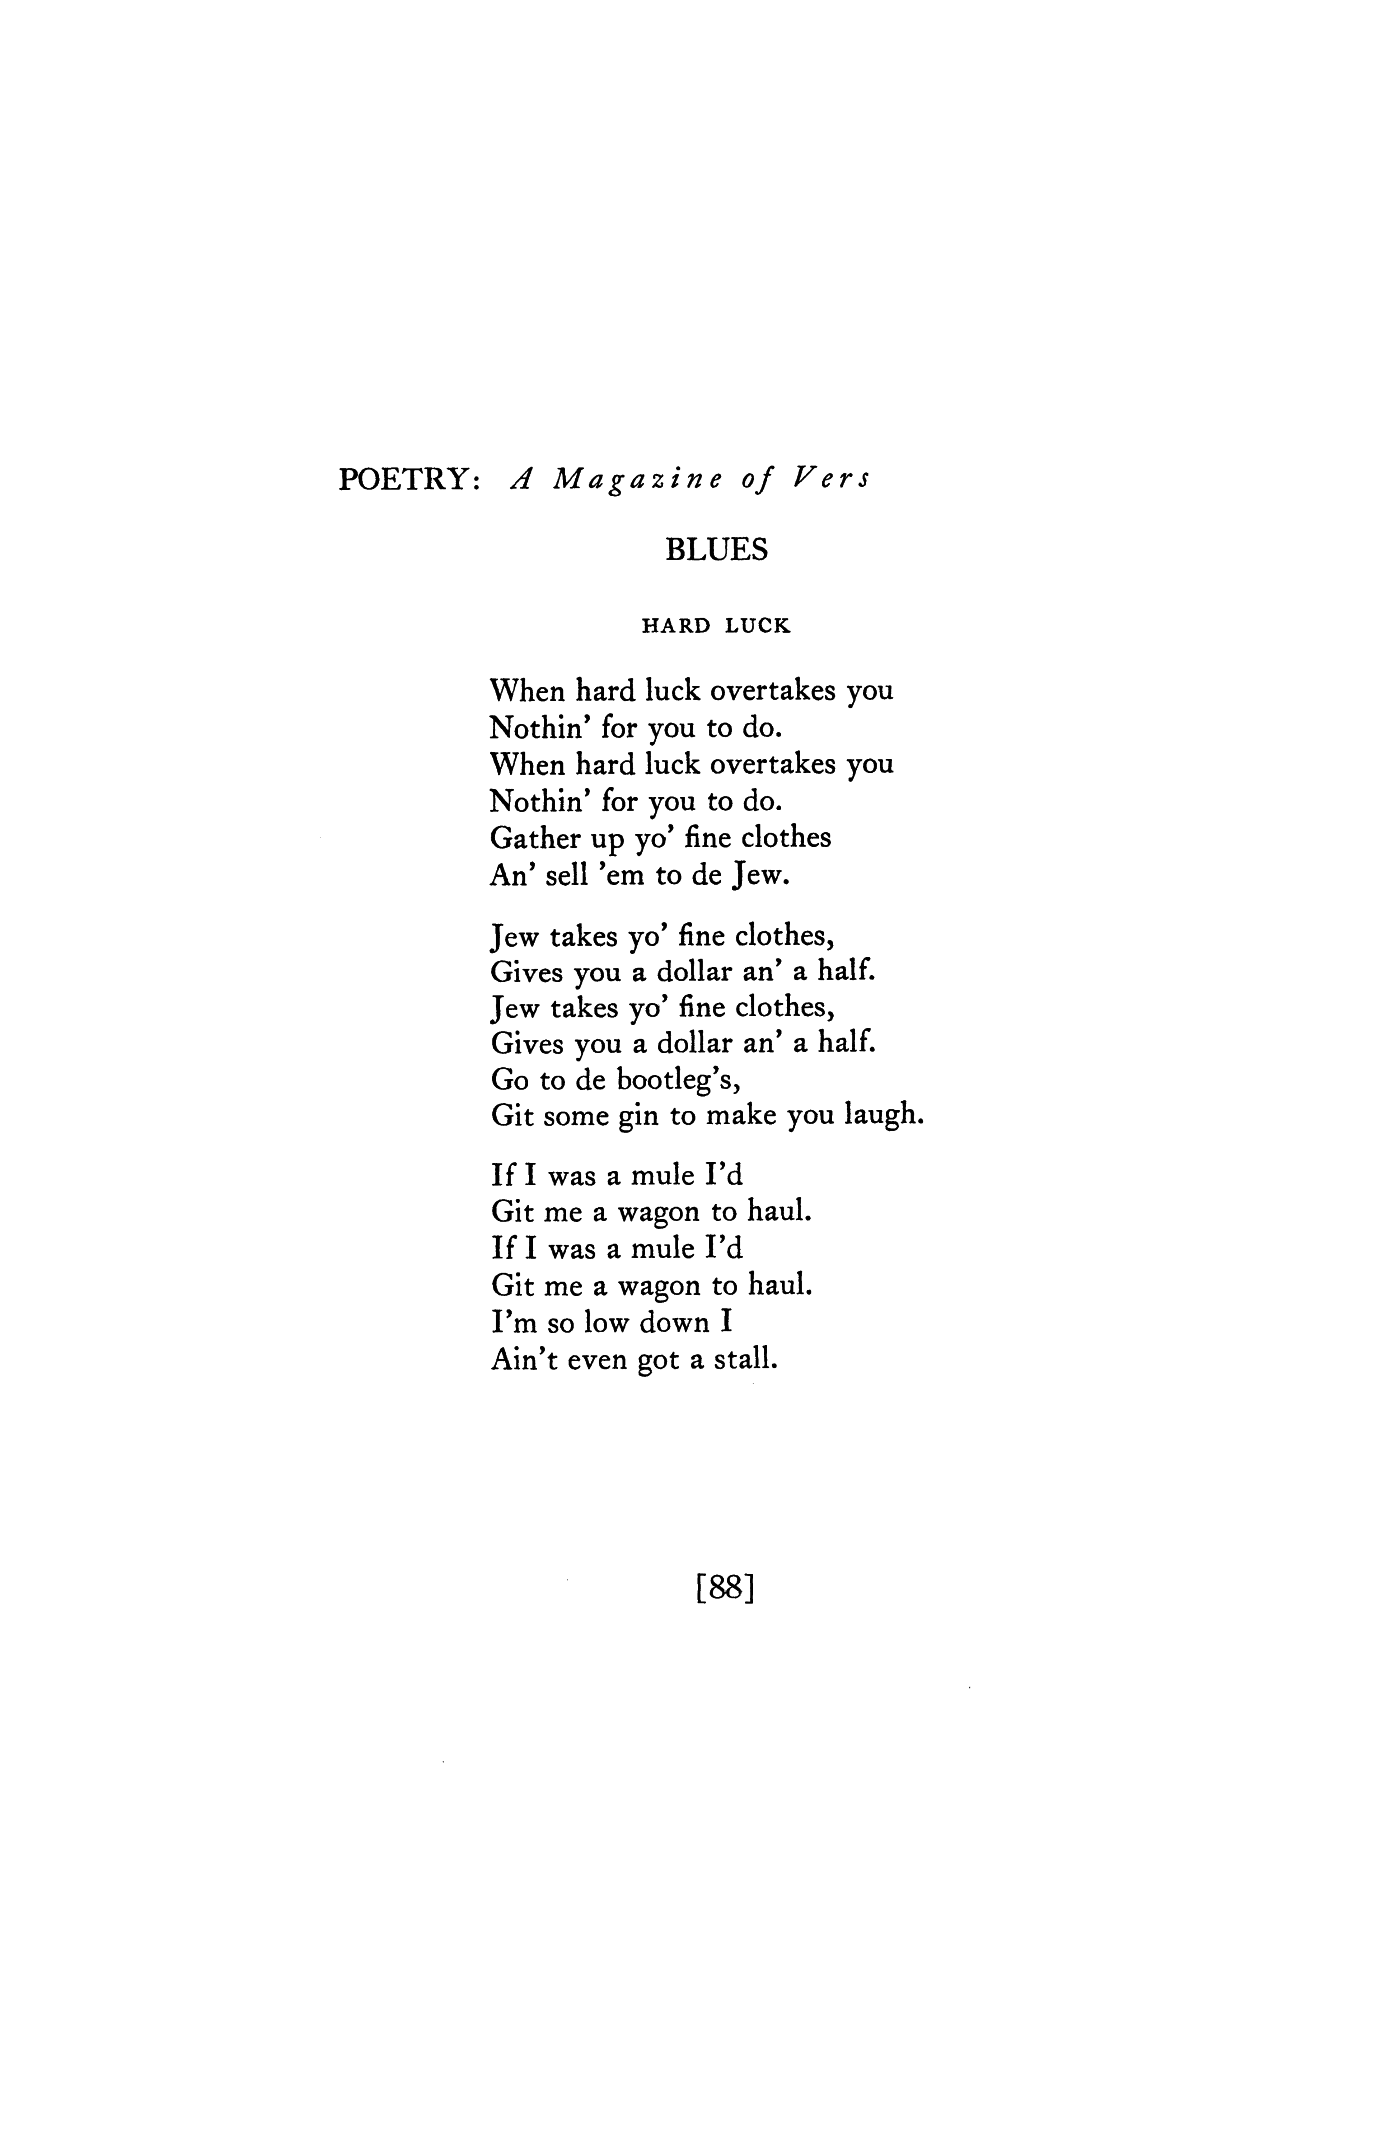 Hard Luck by Langston Hughes | Poetry Magazine